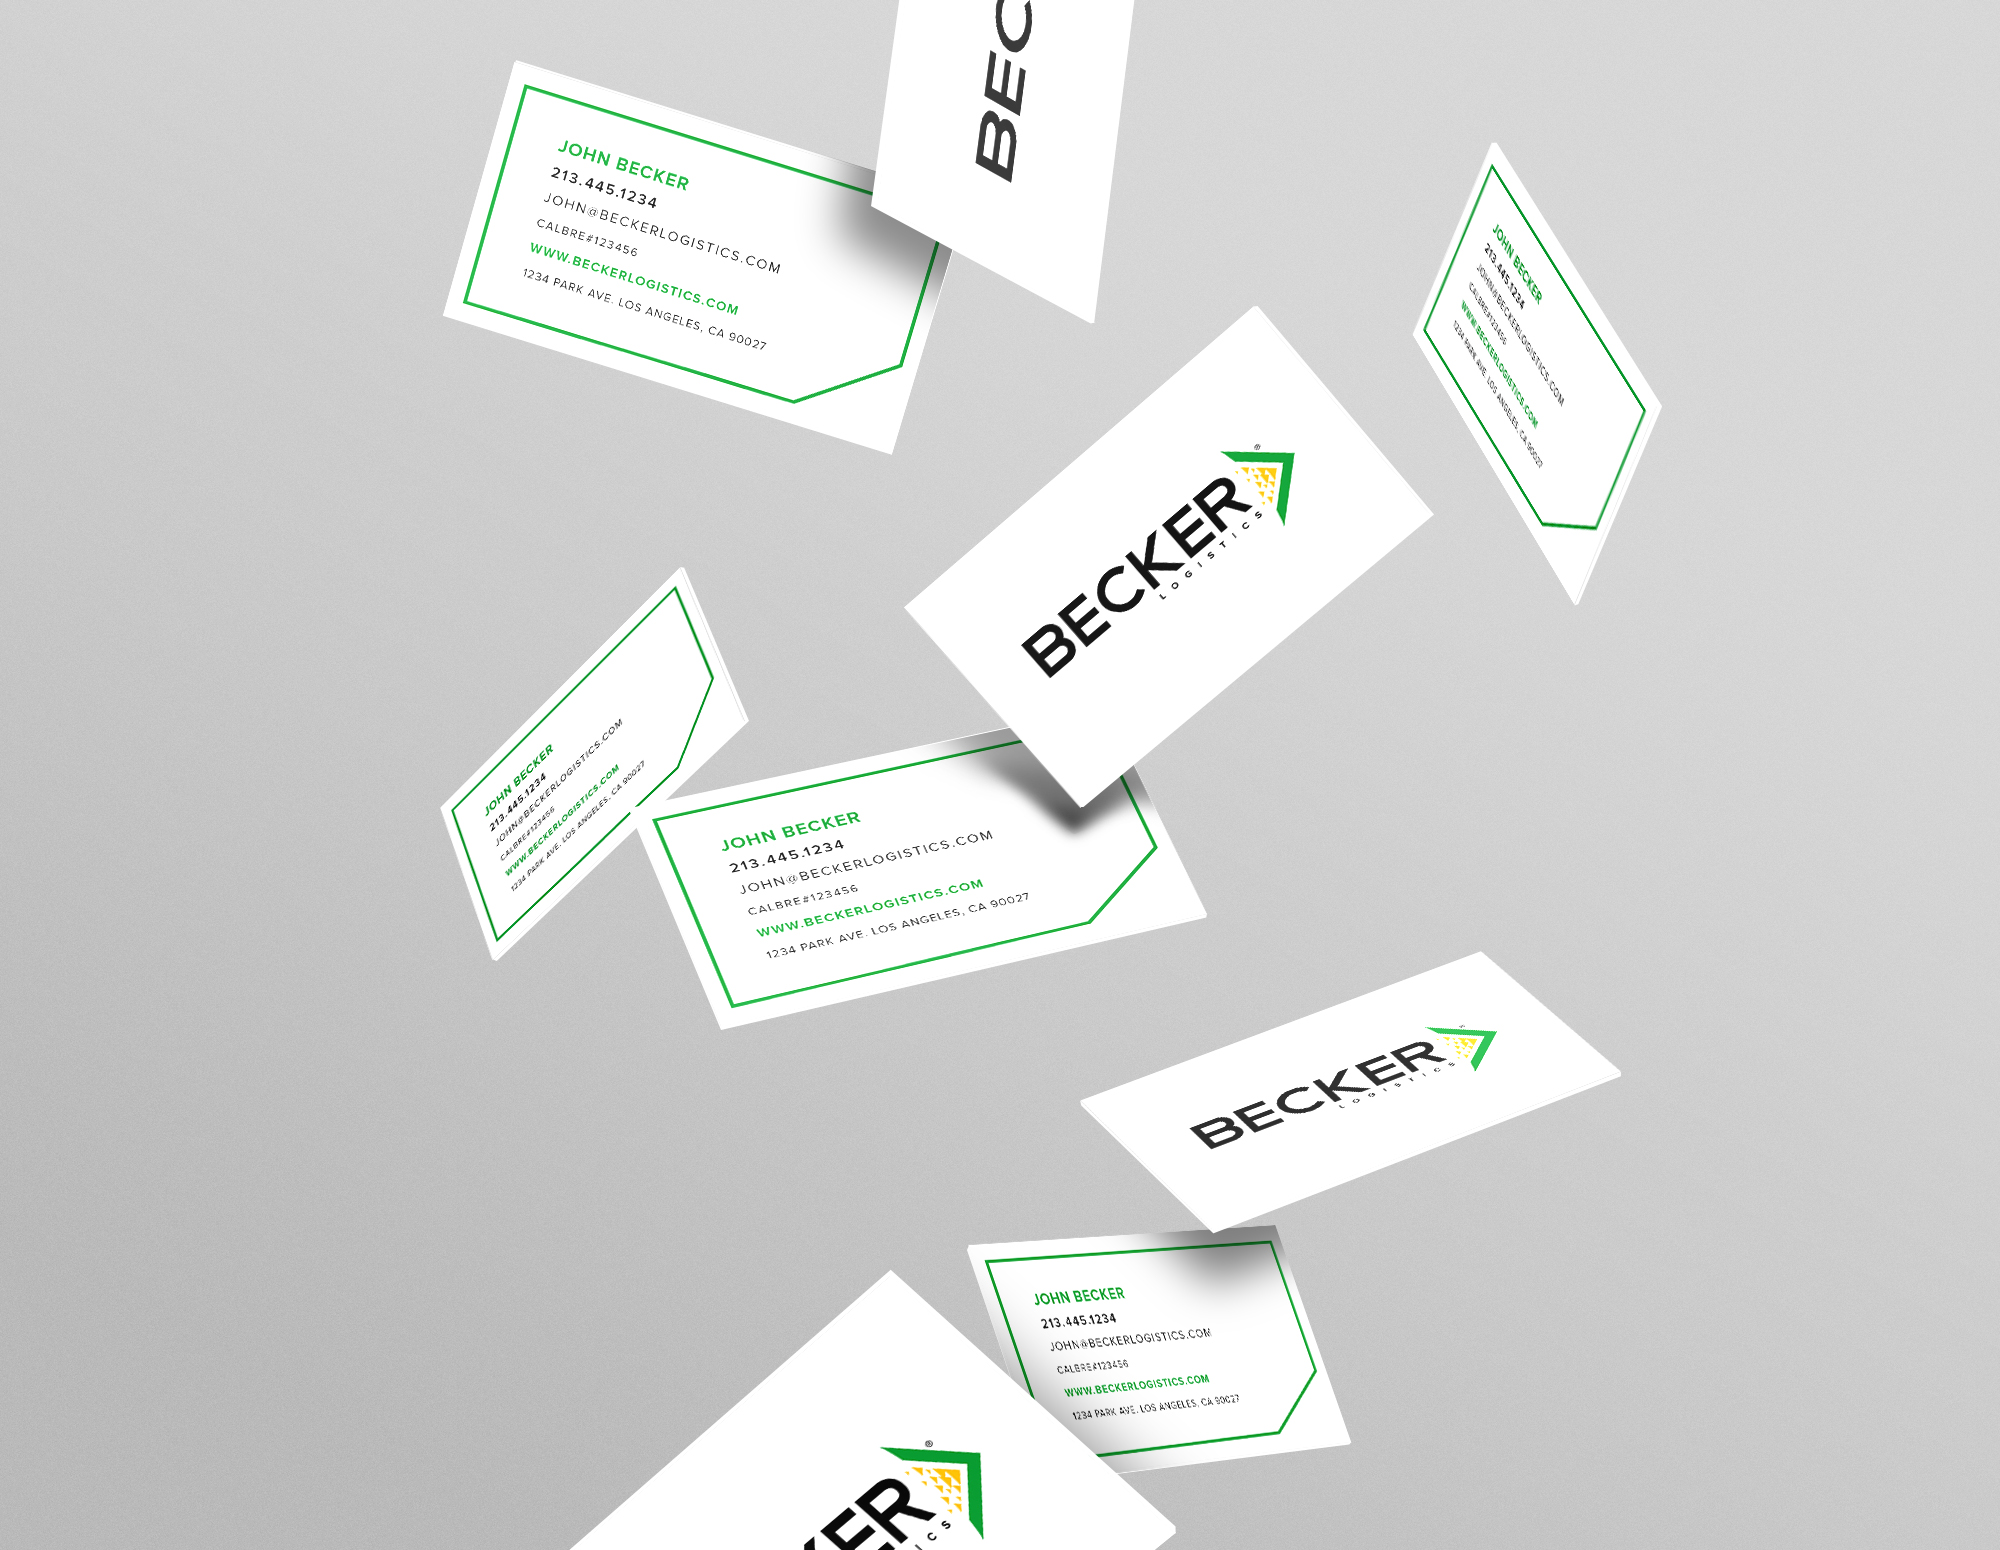 Becker Business Cards.jpg